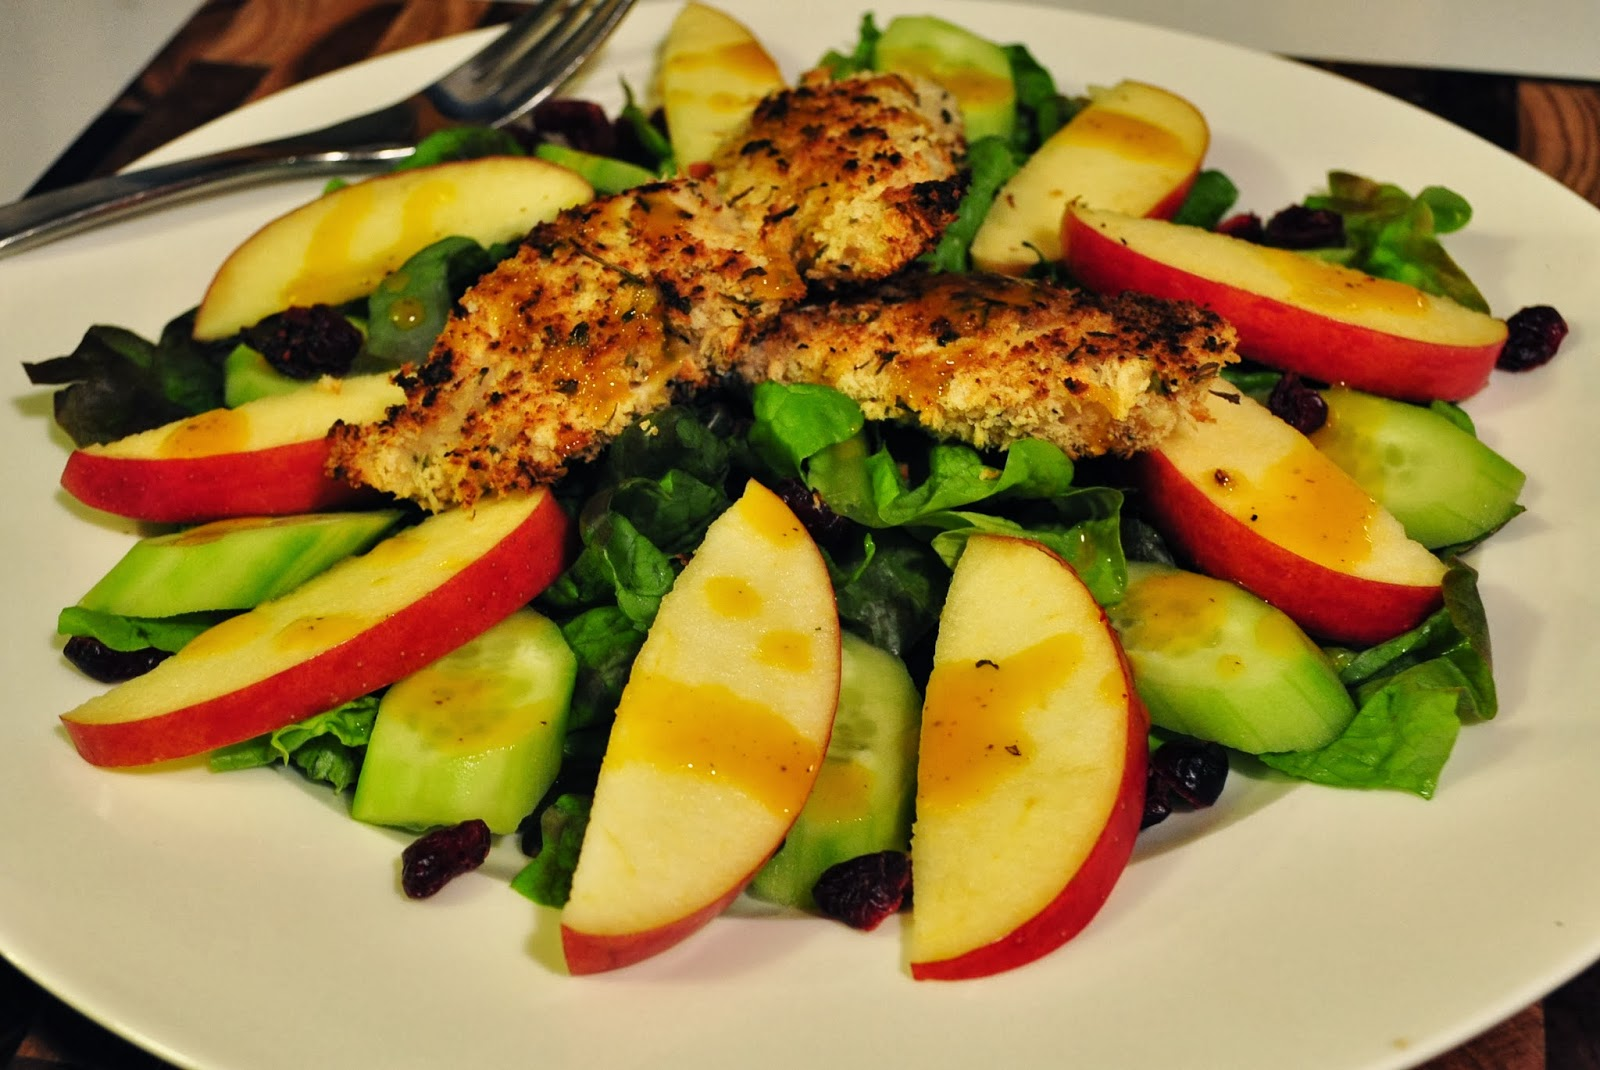 My Tiny Oven: Baked Crispy Chicken and Apple Salad